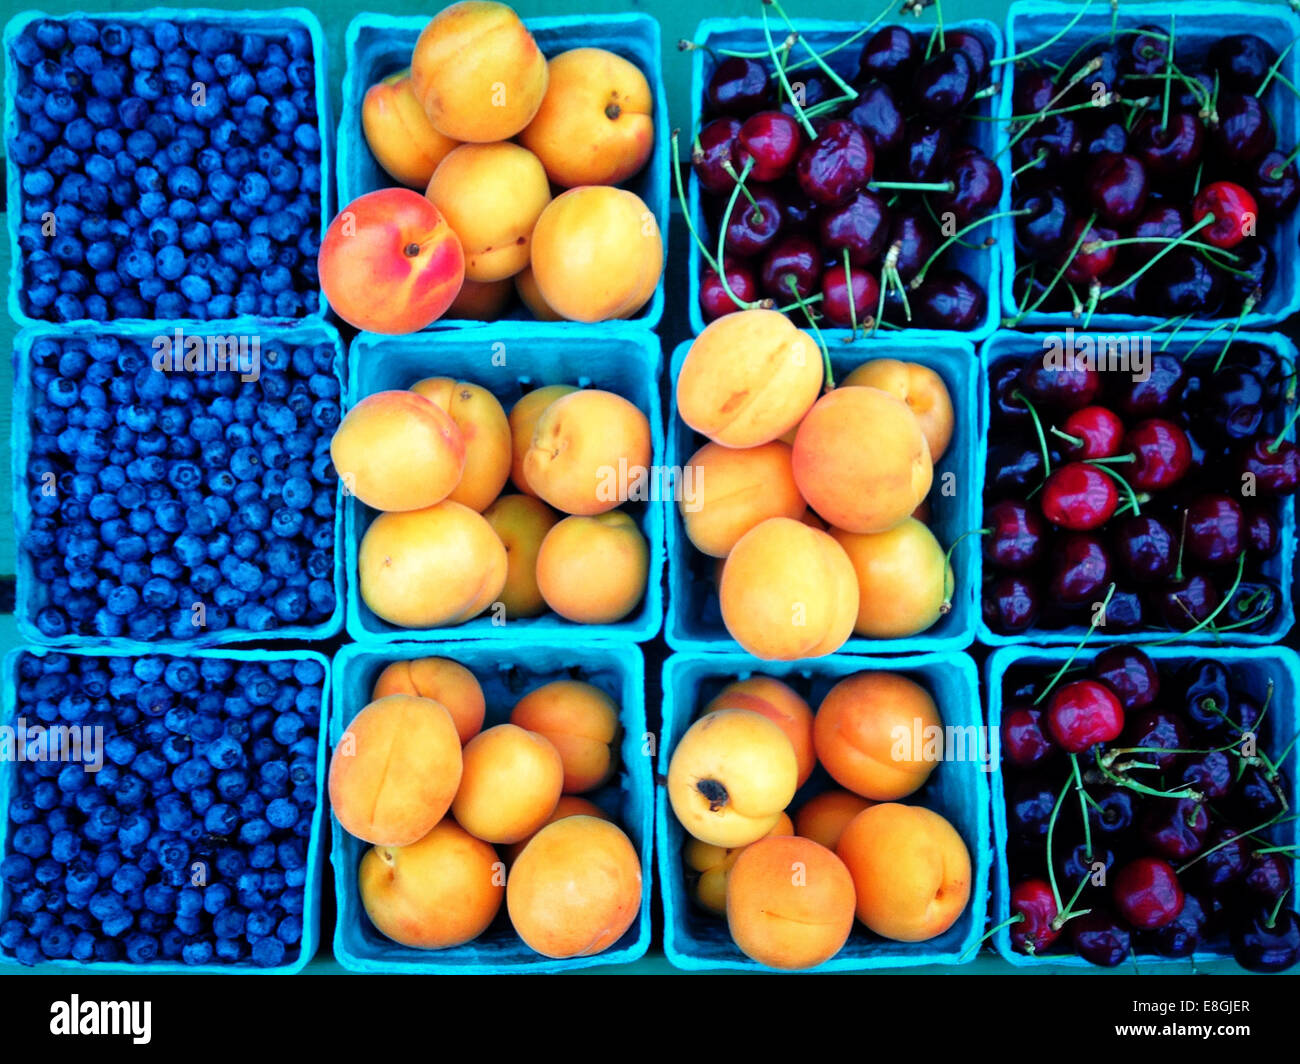 Overhead view of punnets of fruit - Stock Image